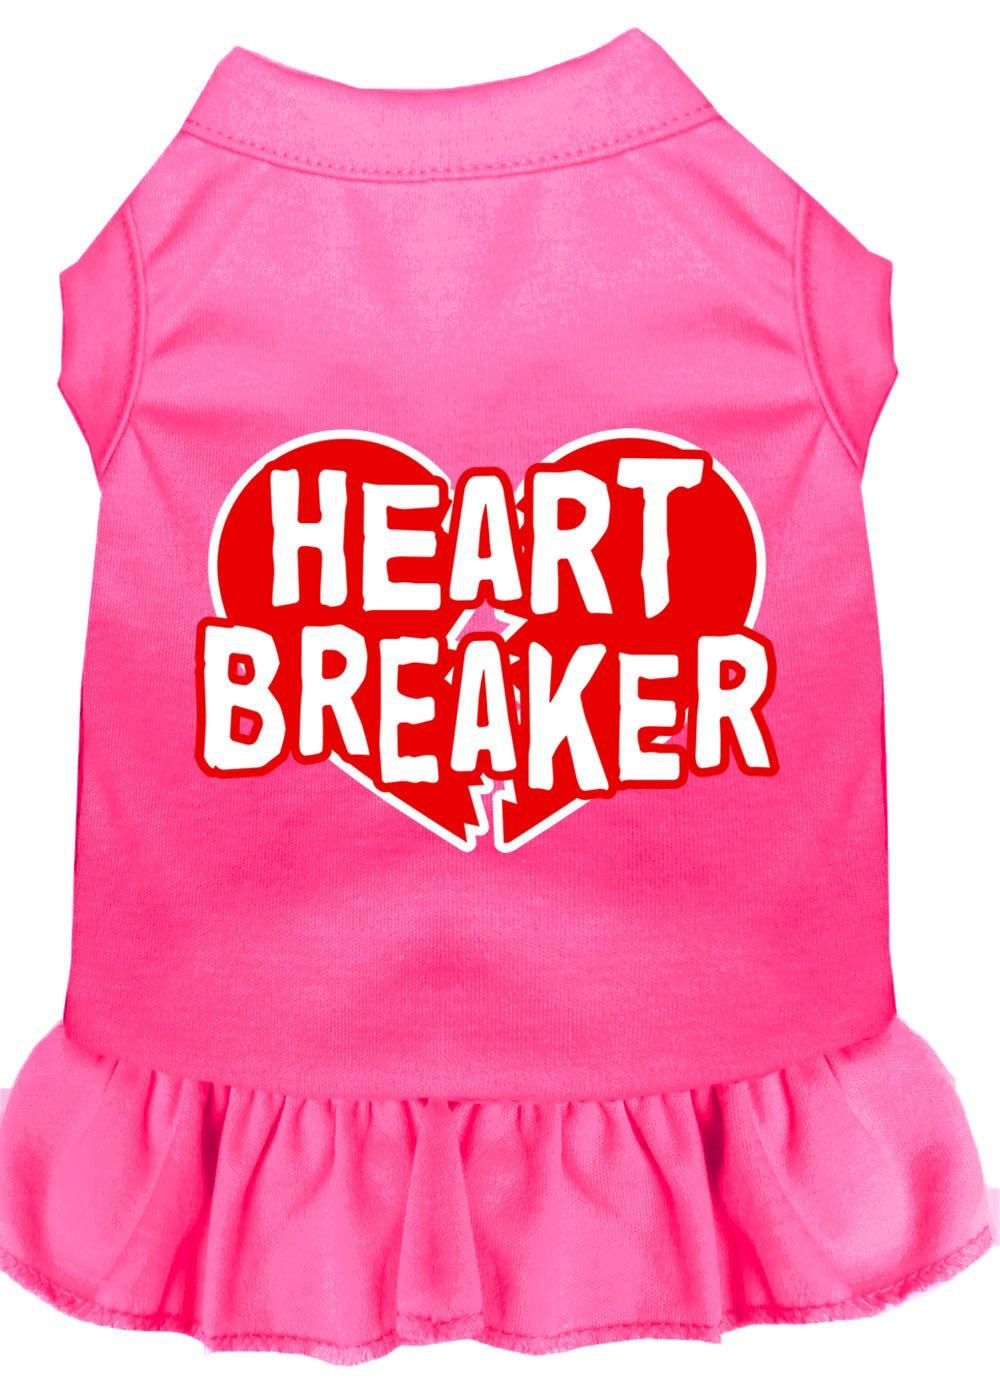 Mirage Pet Products 58-05 4XBPK Pink 4 Heart Breaker Screen Print Dress Bright, 4X-Large